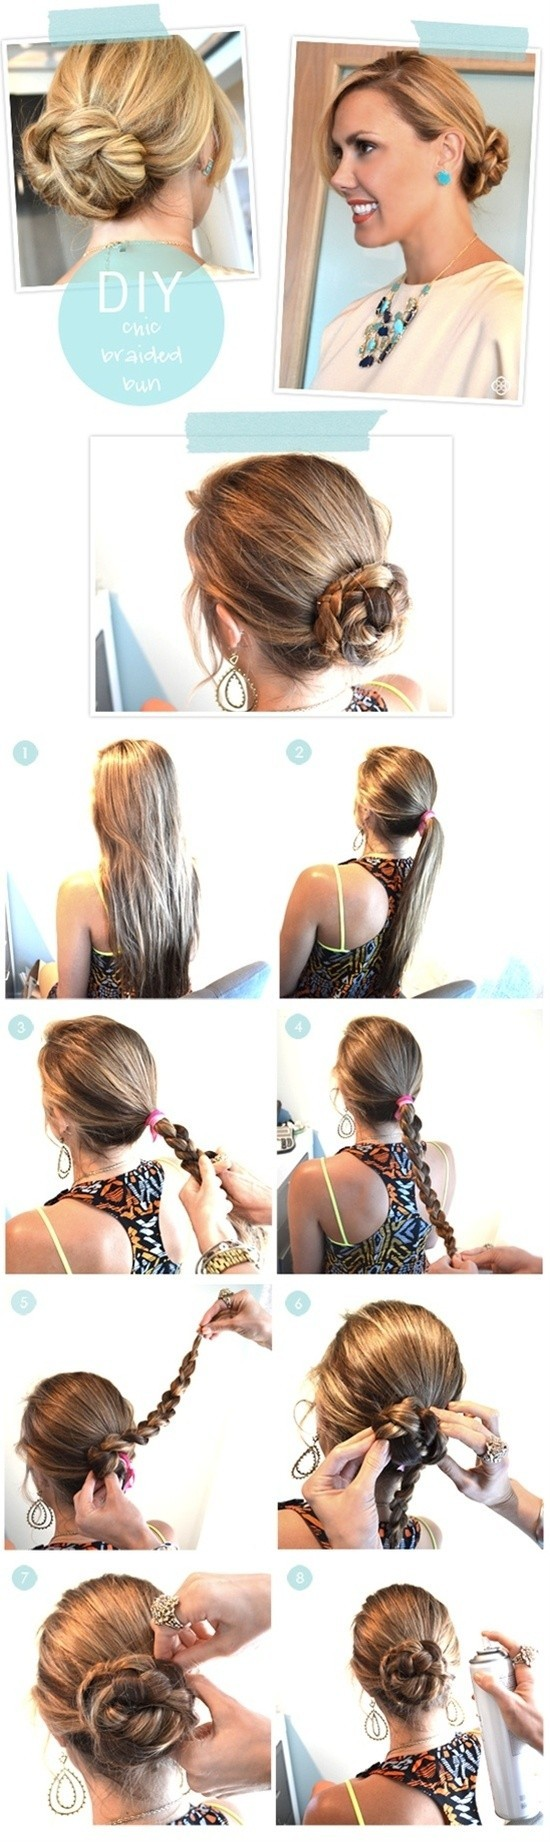 Step by step hairstyles for long hair long hairstyles ideas diy chic braided bun hair tutorial easy updos for long hair solutioingenieria Choice Image